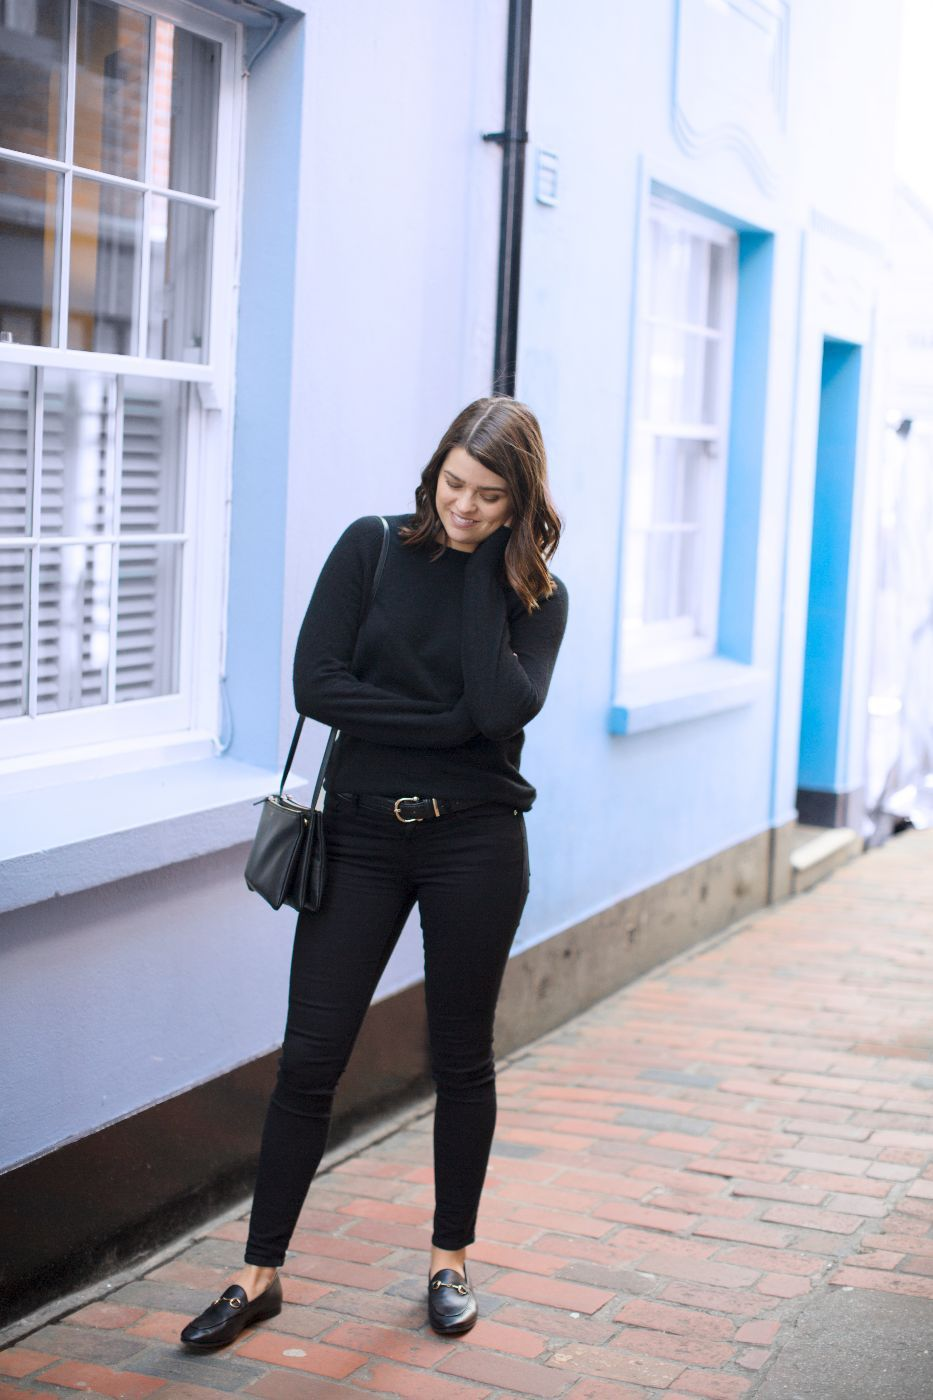 How To Make 10 Basics Into 3 Outfits – The Anna Edit